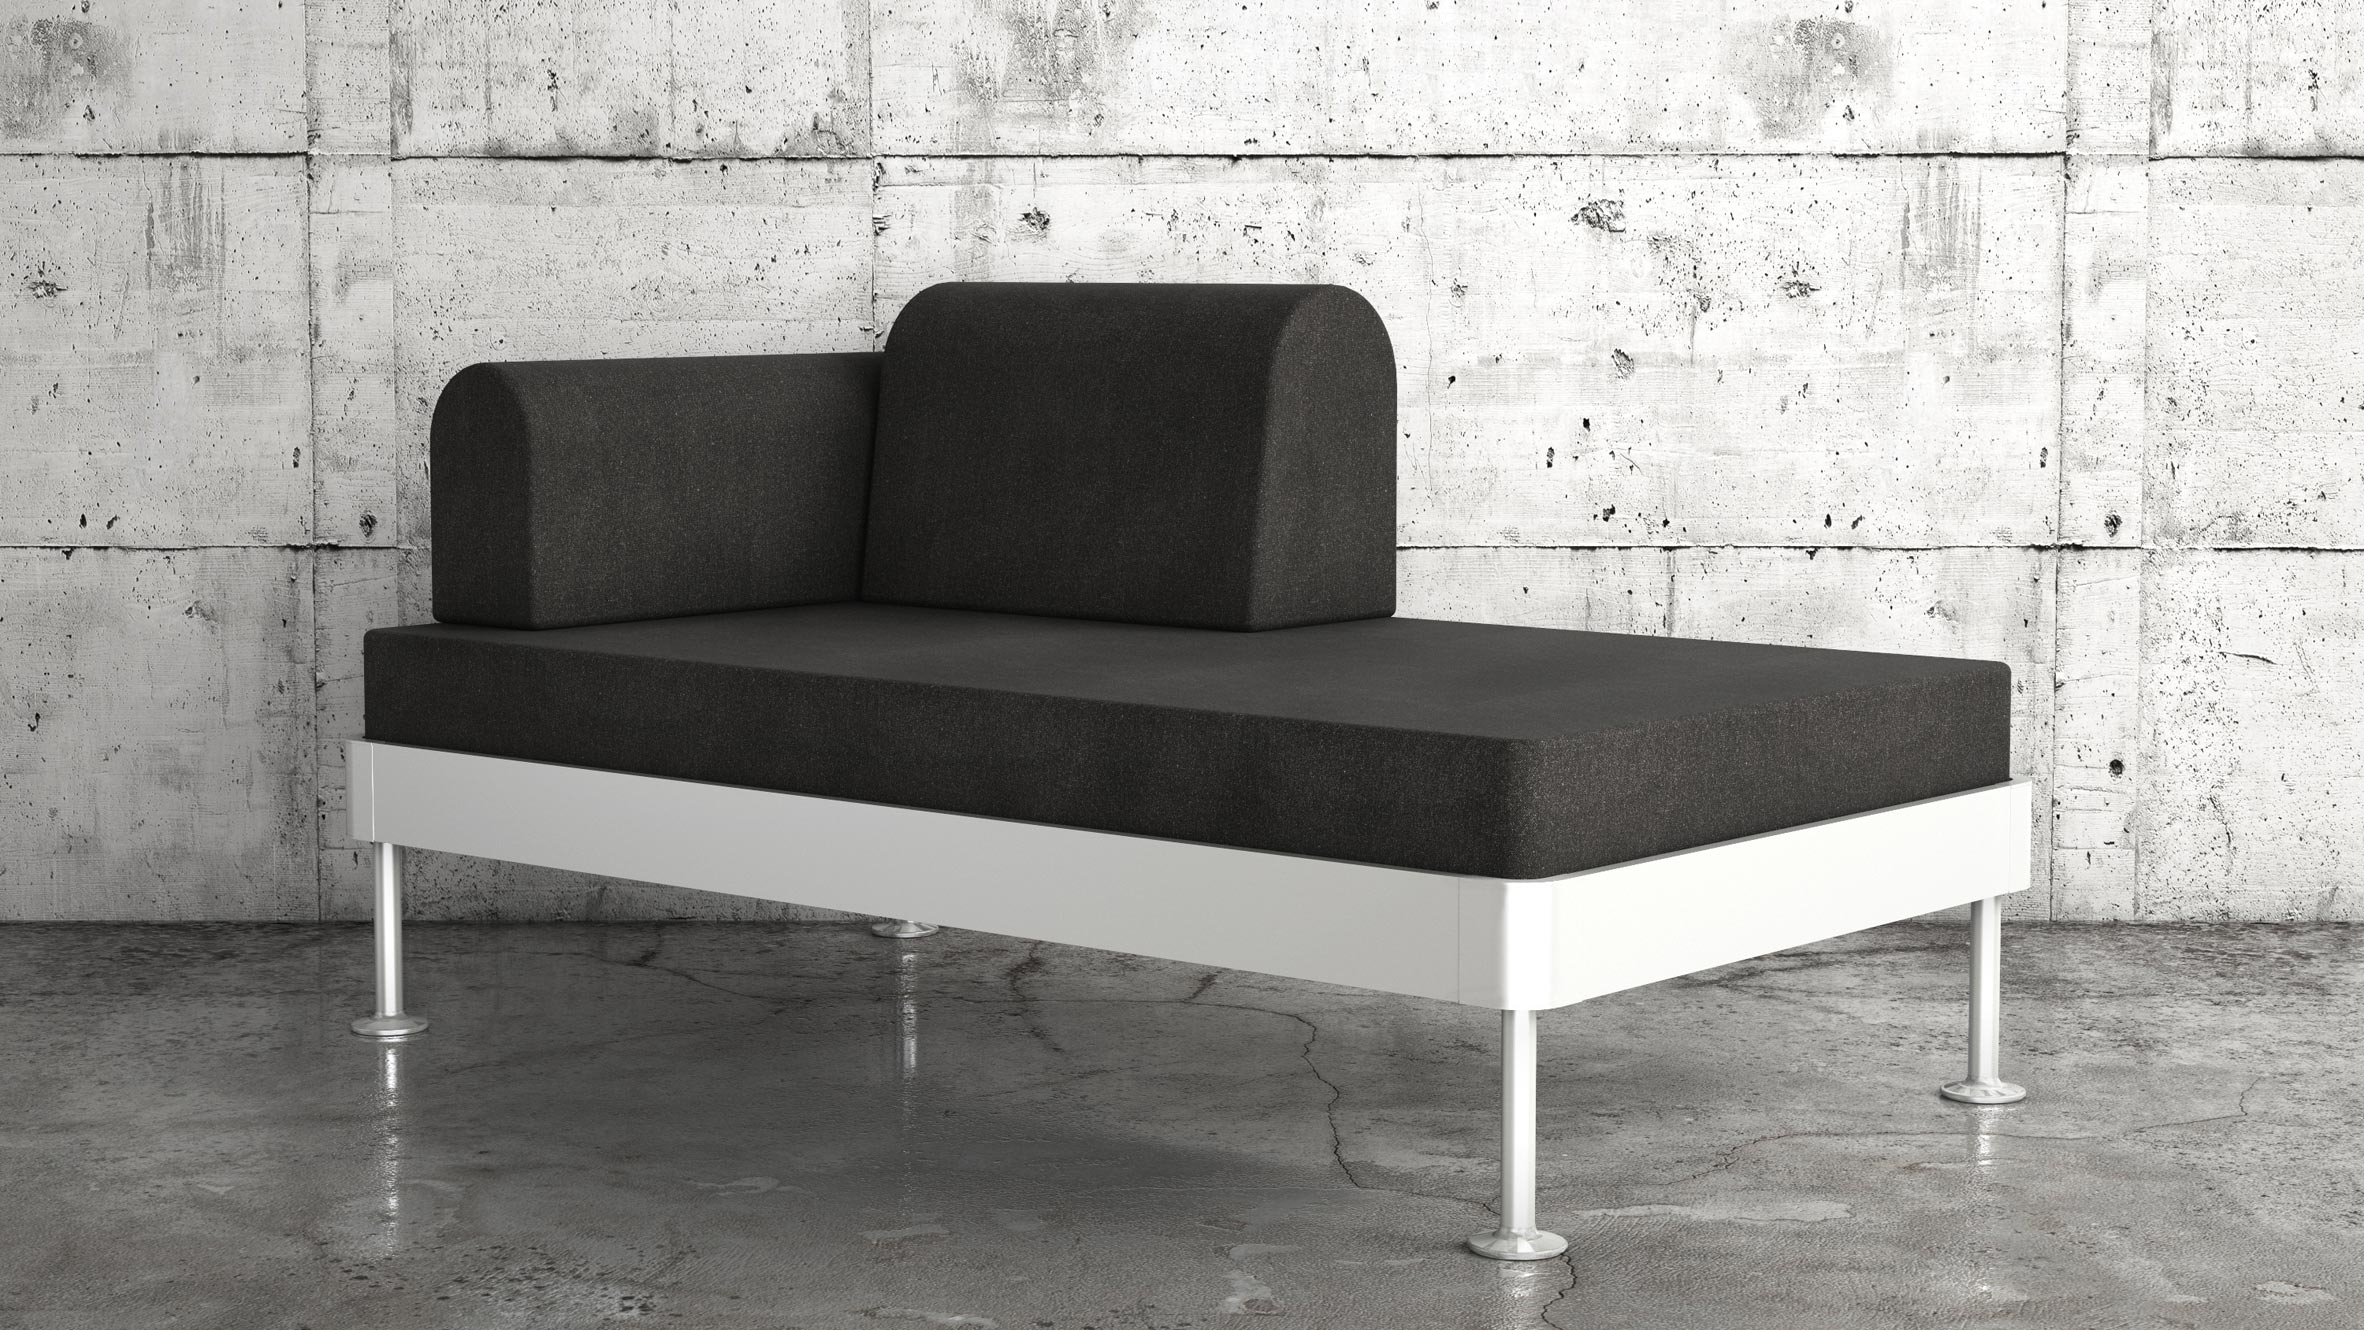 Ikea's 'hackable' Sofa Bed Will Debut At Milan Design Week – Curbed Inside Ikea Sofa Chairs (Image 14 of 25)